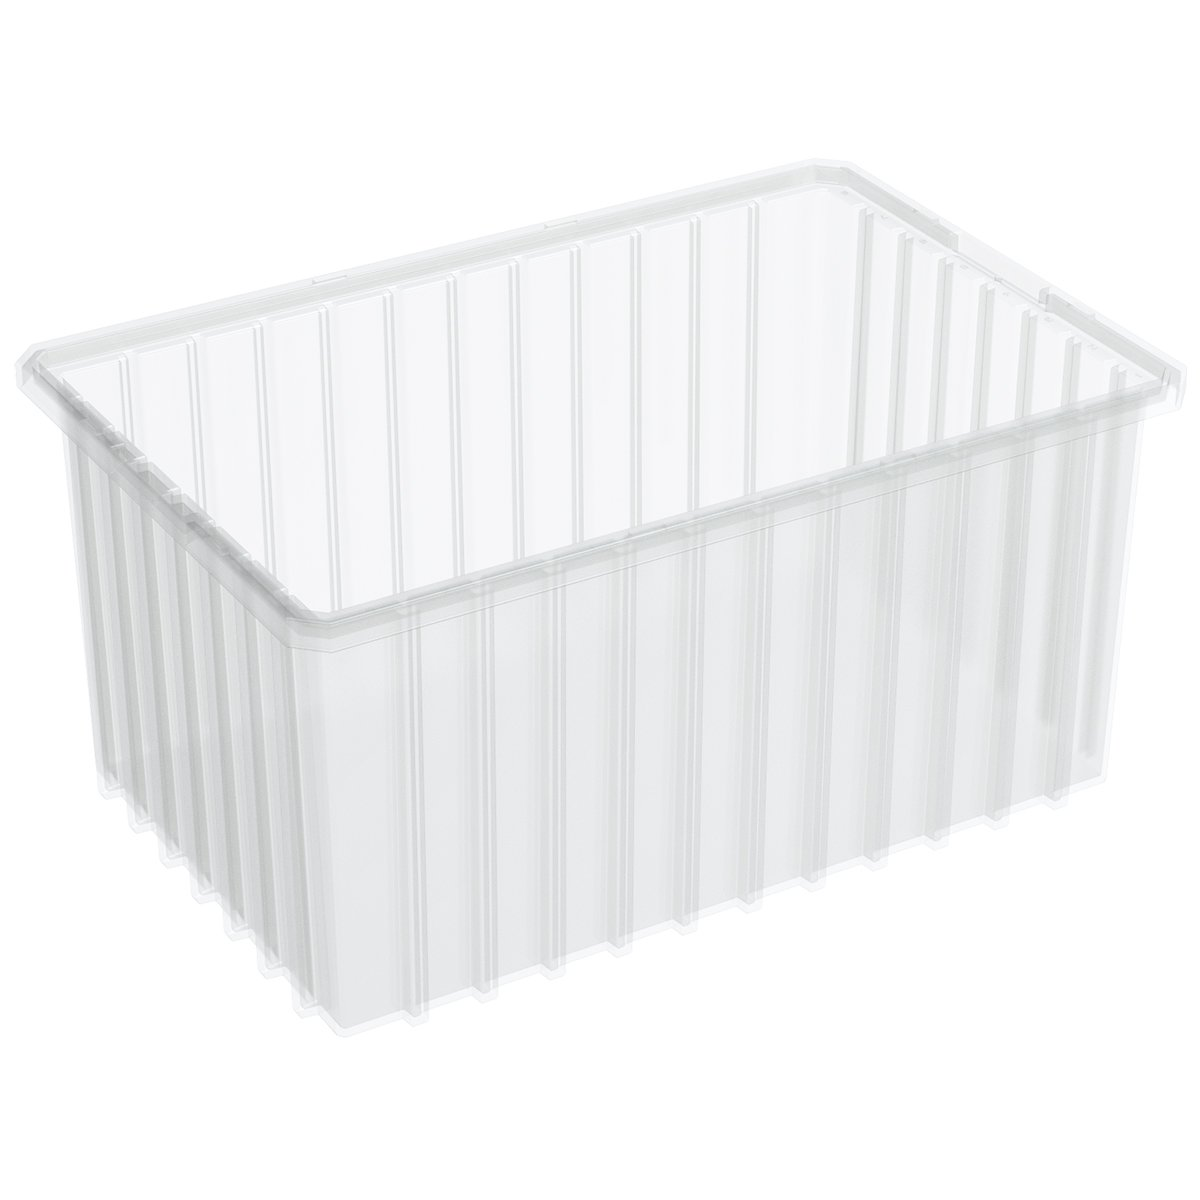 Akro-Mils 33168 16-1/2-InchL by 10-7/8-Inch W by 8-Inch H Akro-Grid Slotted Divider Plastic Tote Box, Clear, 6-Pack